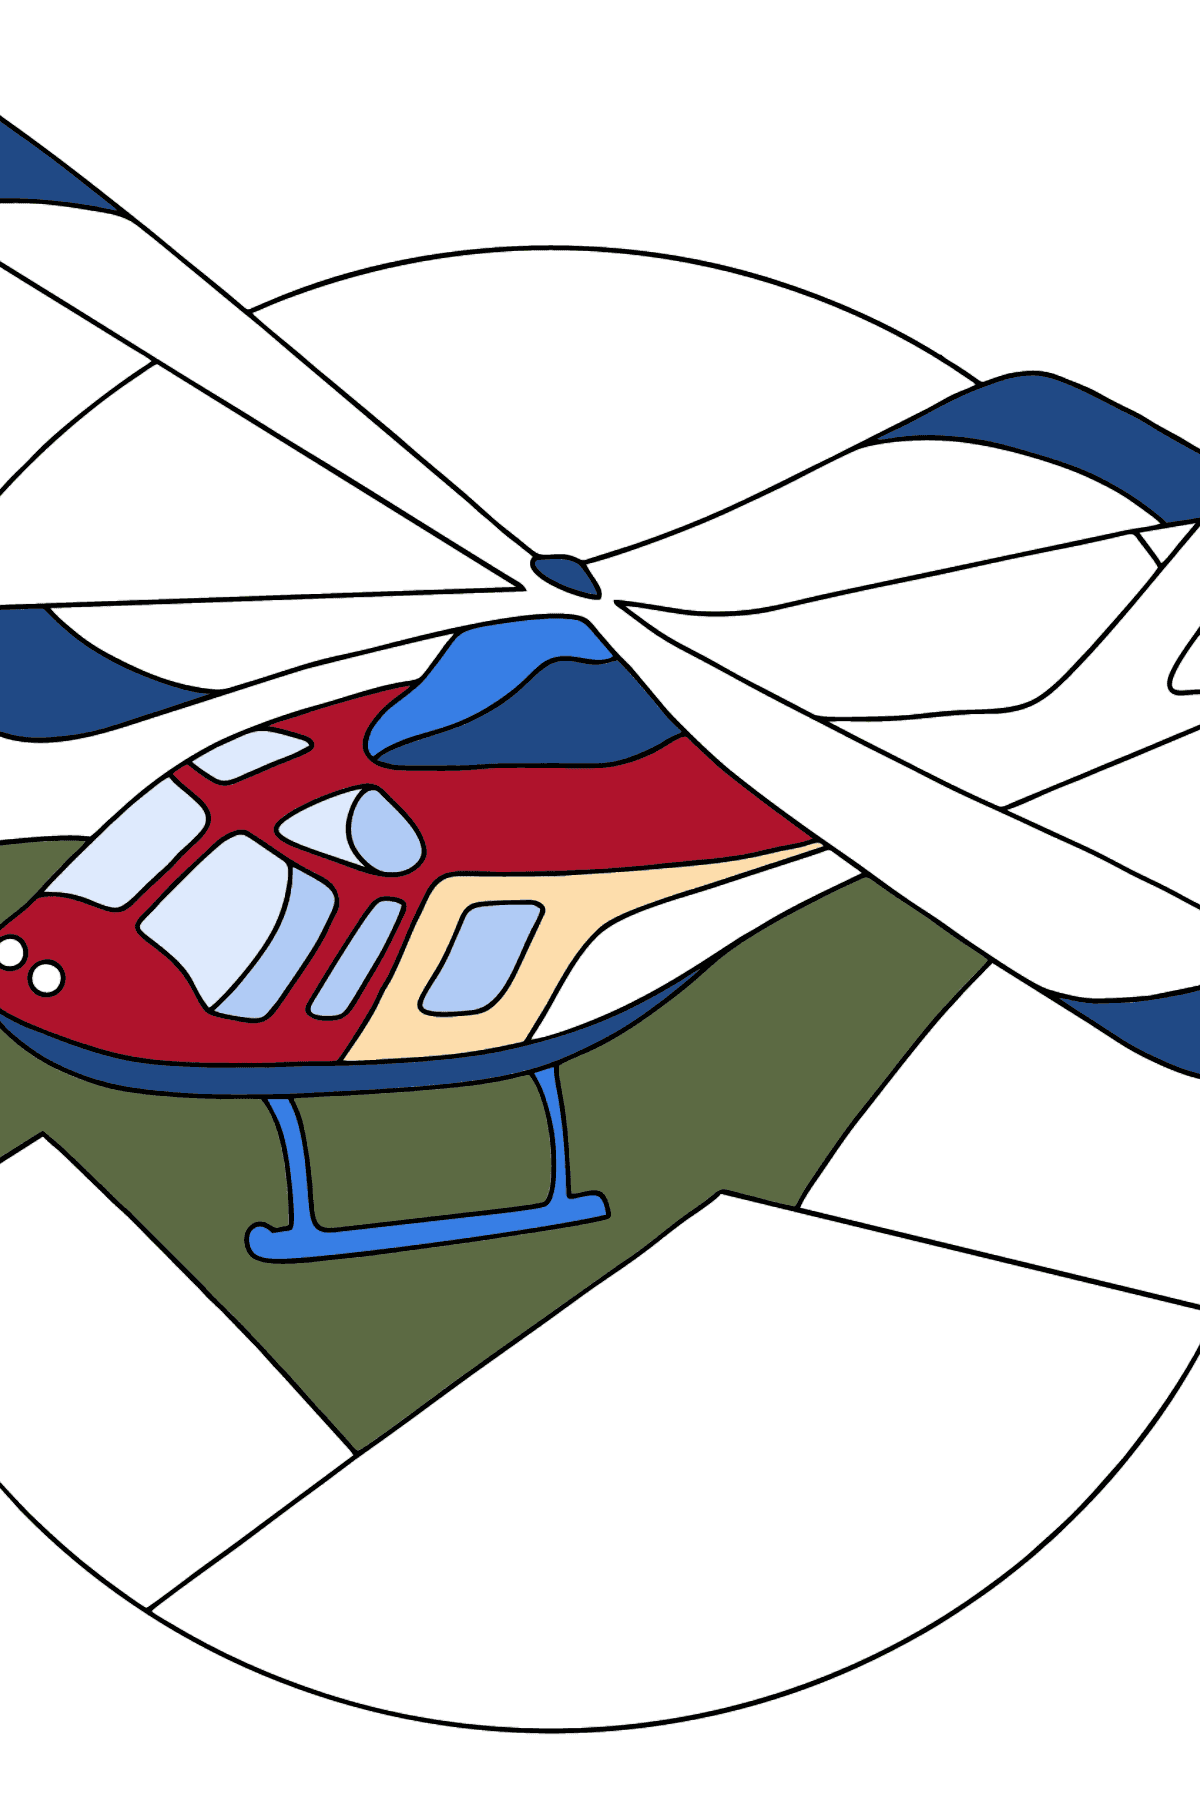 Coloring Page - A Sport Helicopter - Coloring Pages for Kids